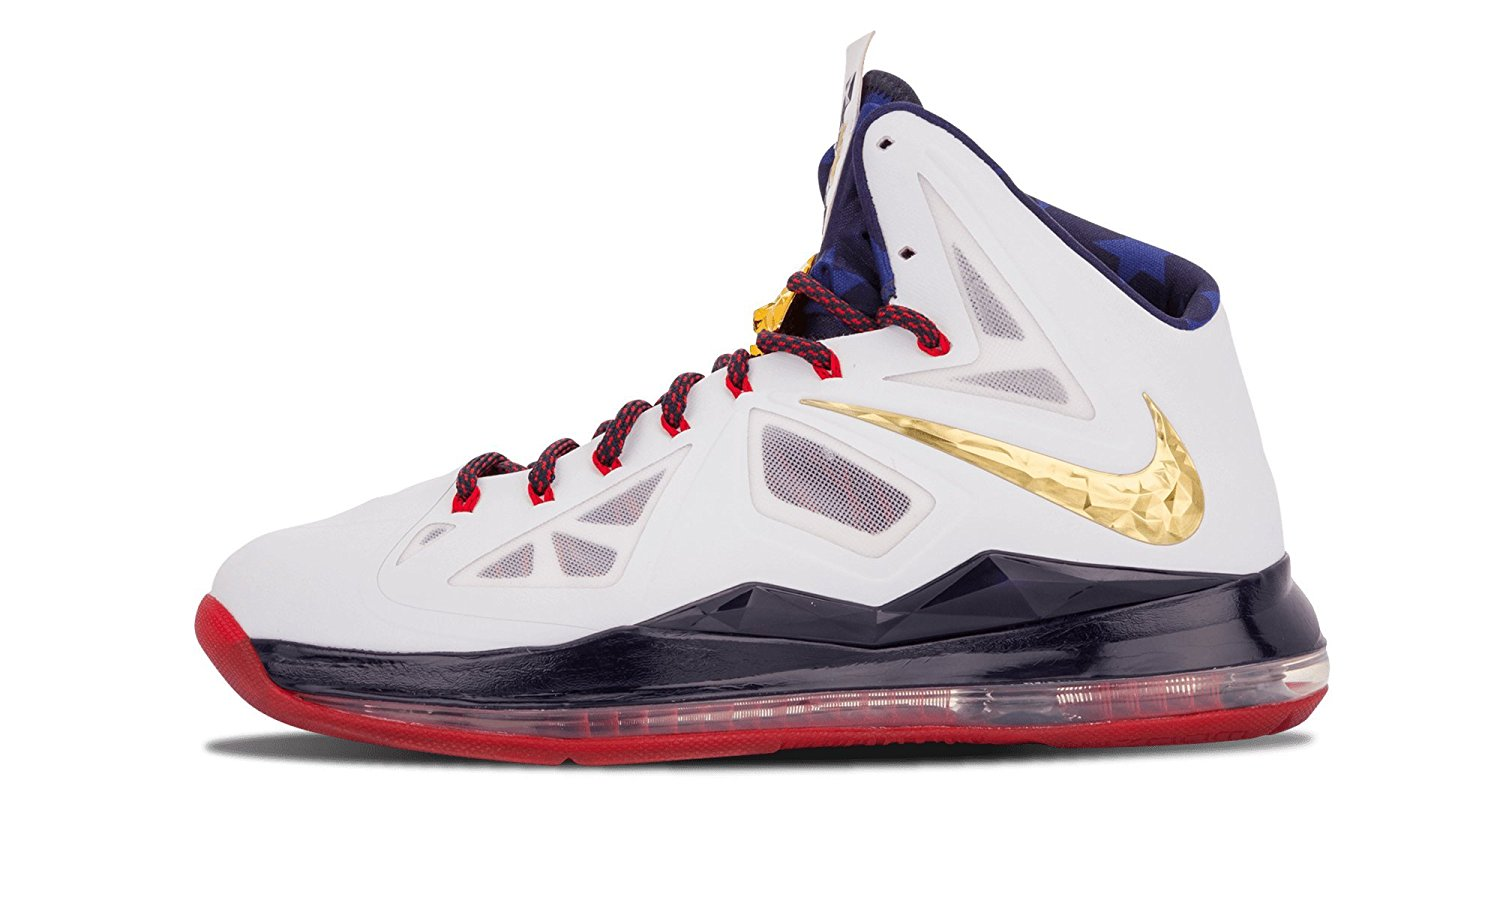 new style 5a289 0a02e Get Quotations · Nike Lebron 10+ Sport Pack - 11